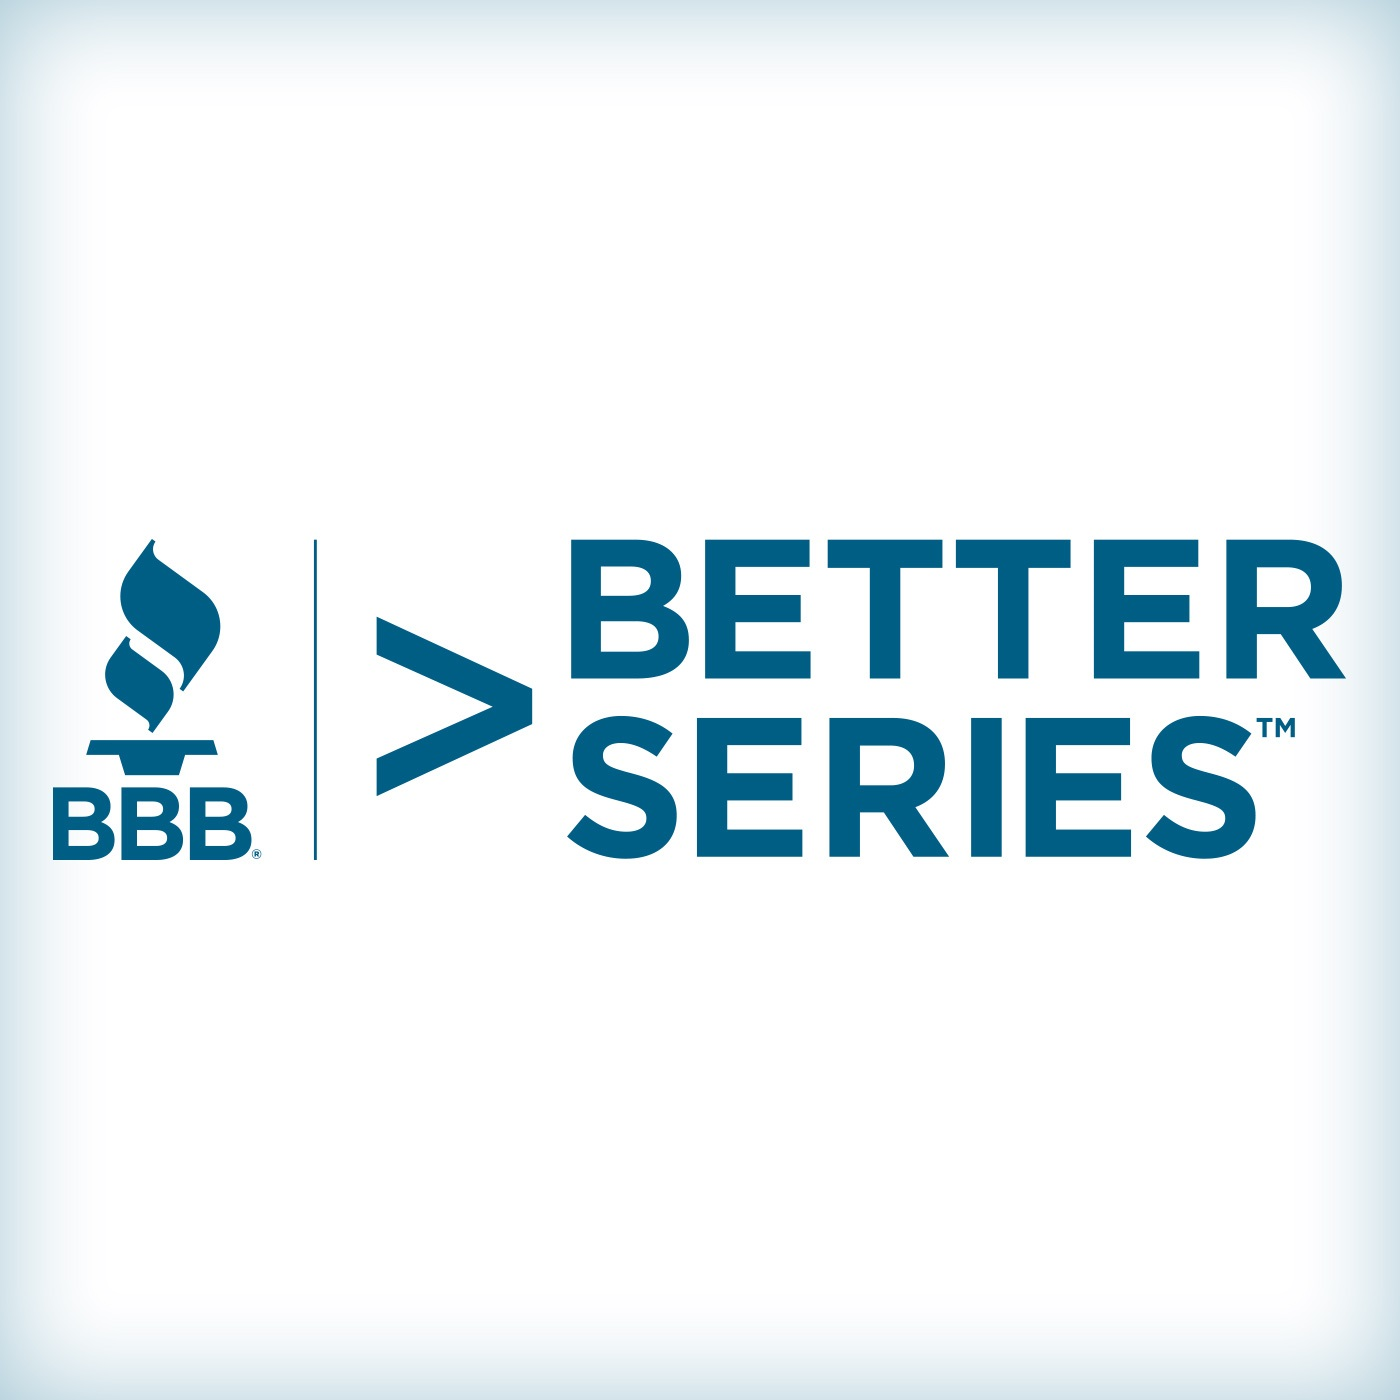 Better Business > Better Series